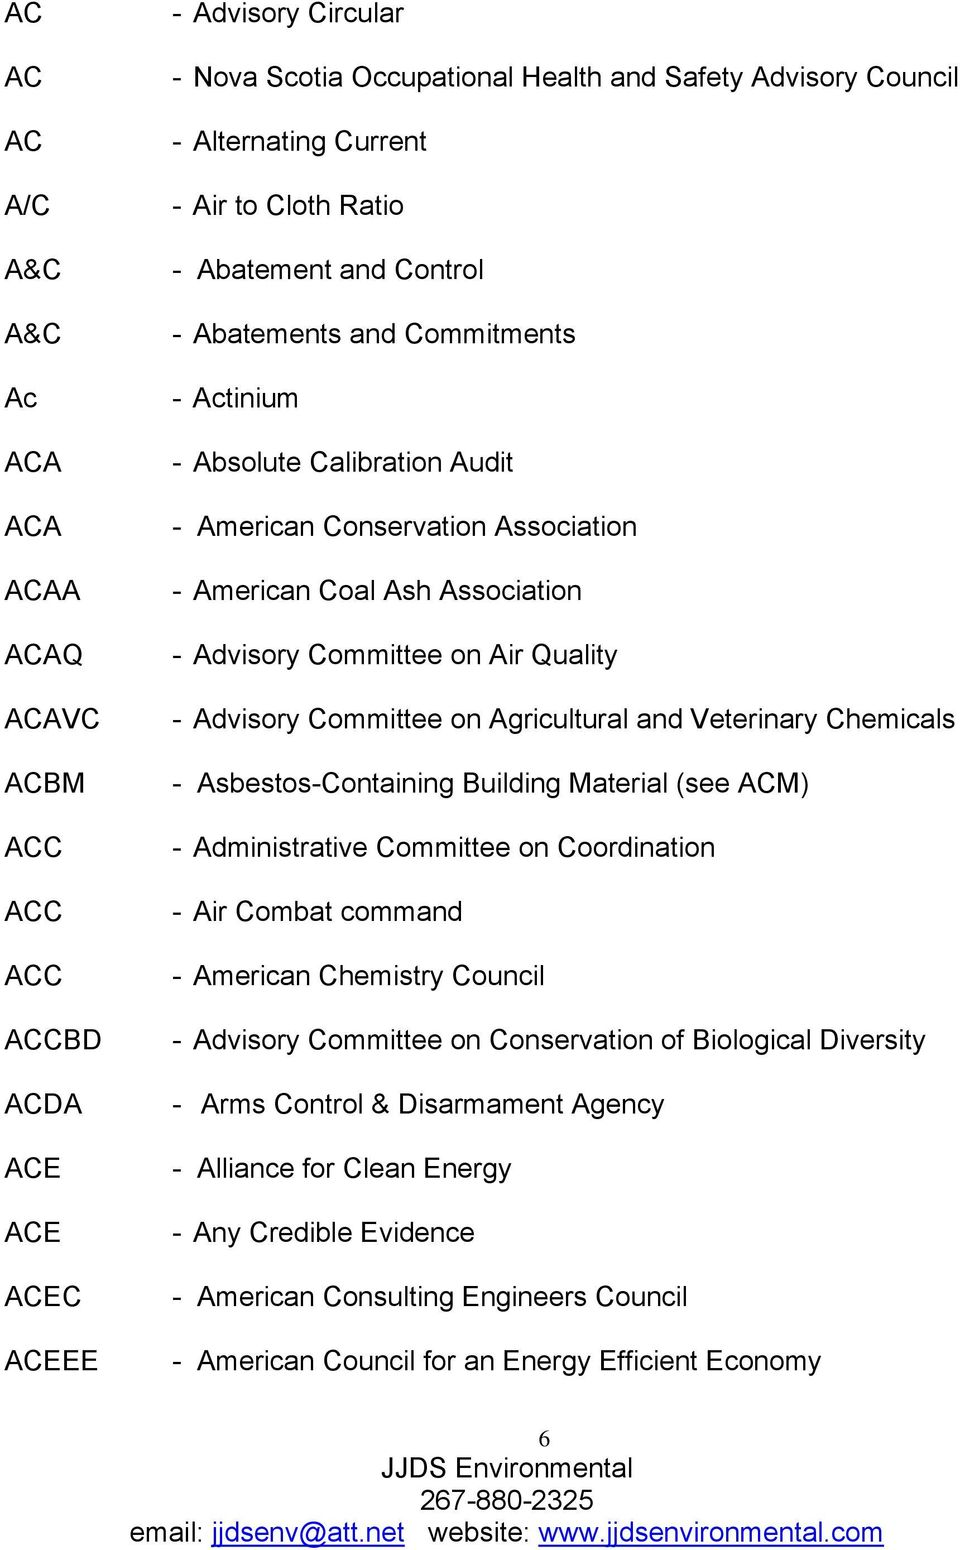 Committee on Air Quality - Advisory Committee on Agricultural and Veterinary Chemicals - Asbestos-Containing Building Material (see ACM) - Administrative Committee on Coordination - Air Combat